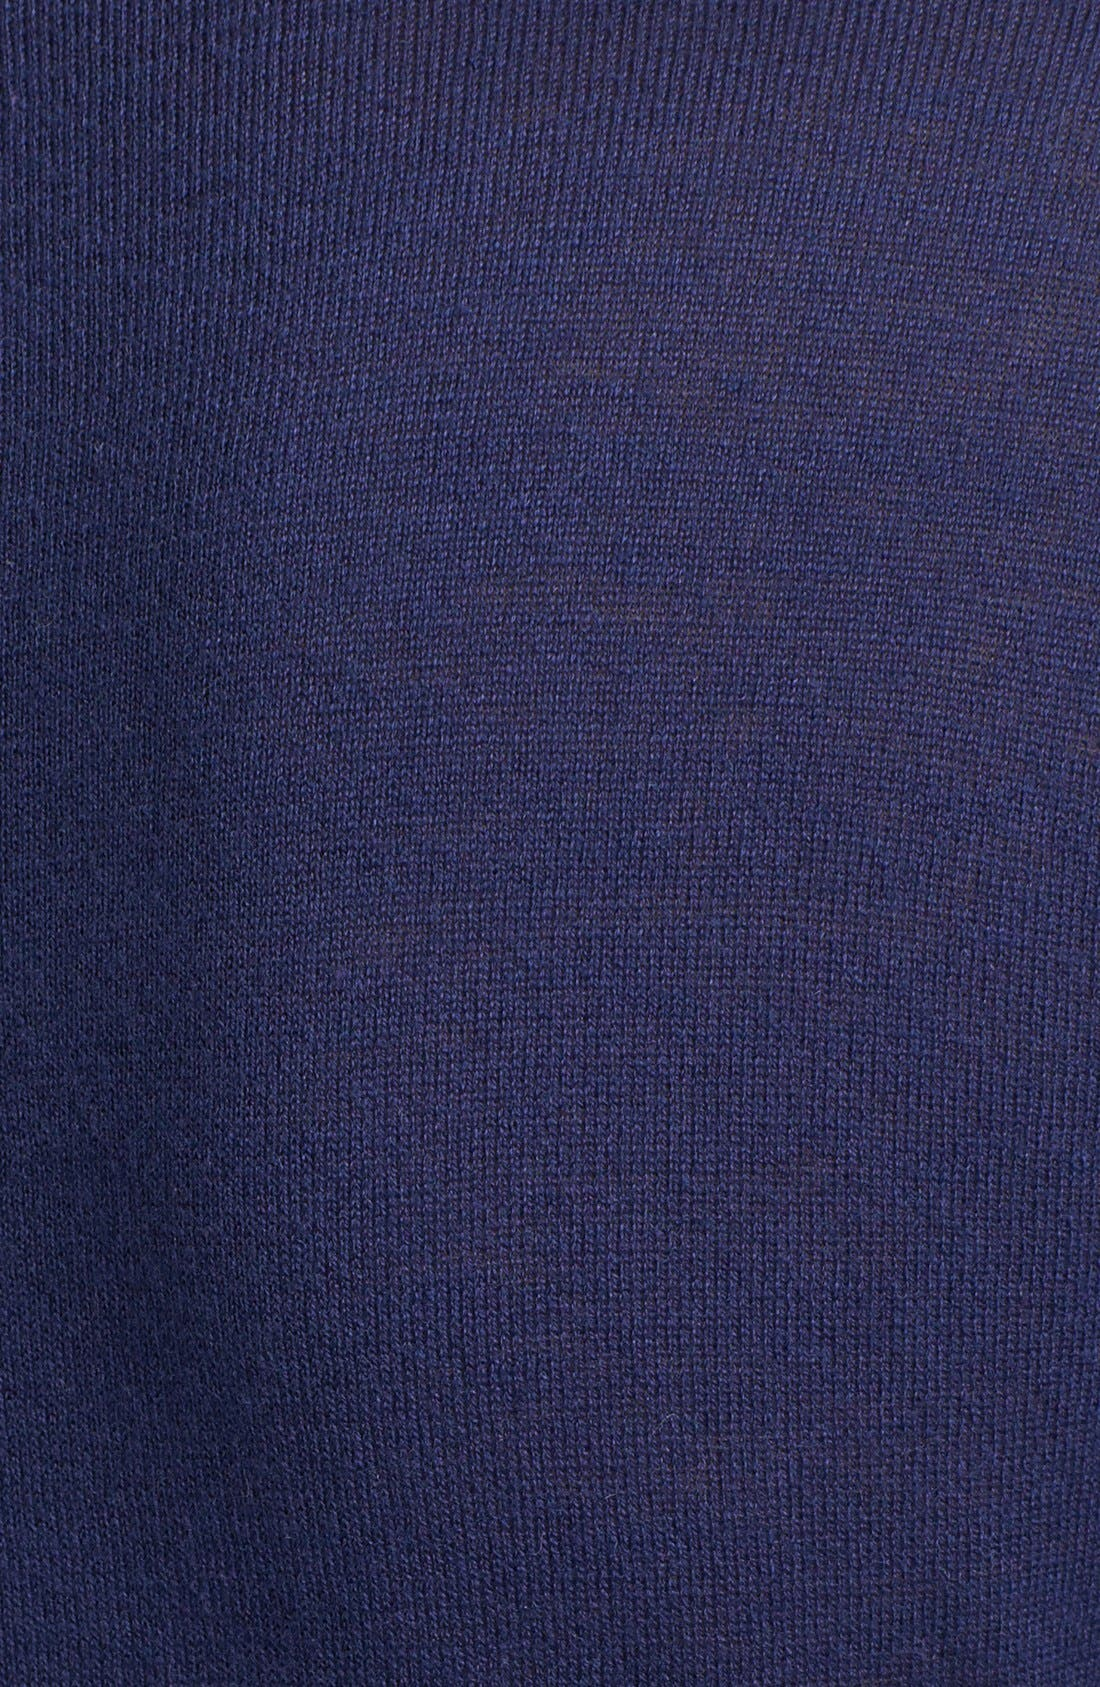 Alternate Image 3  - Halogen® Crewneck Sweater